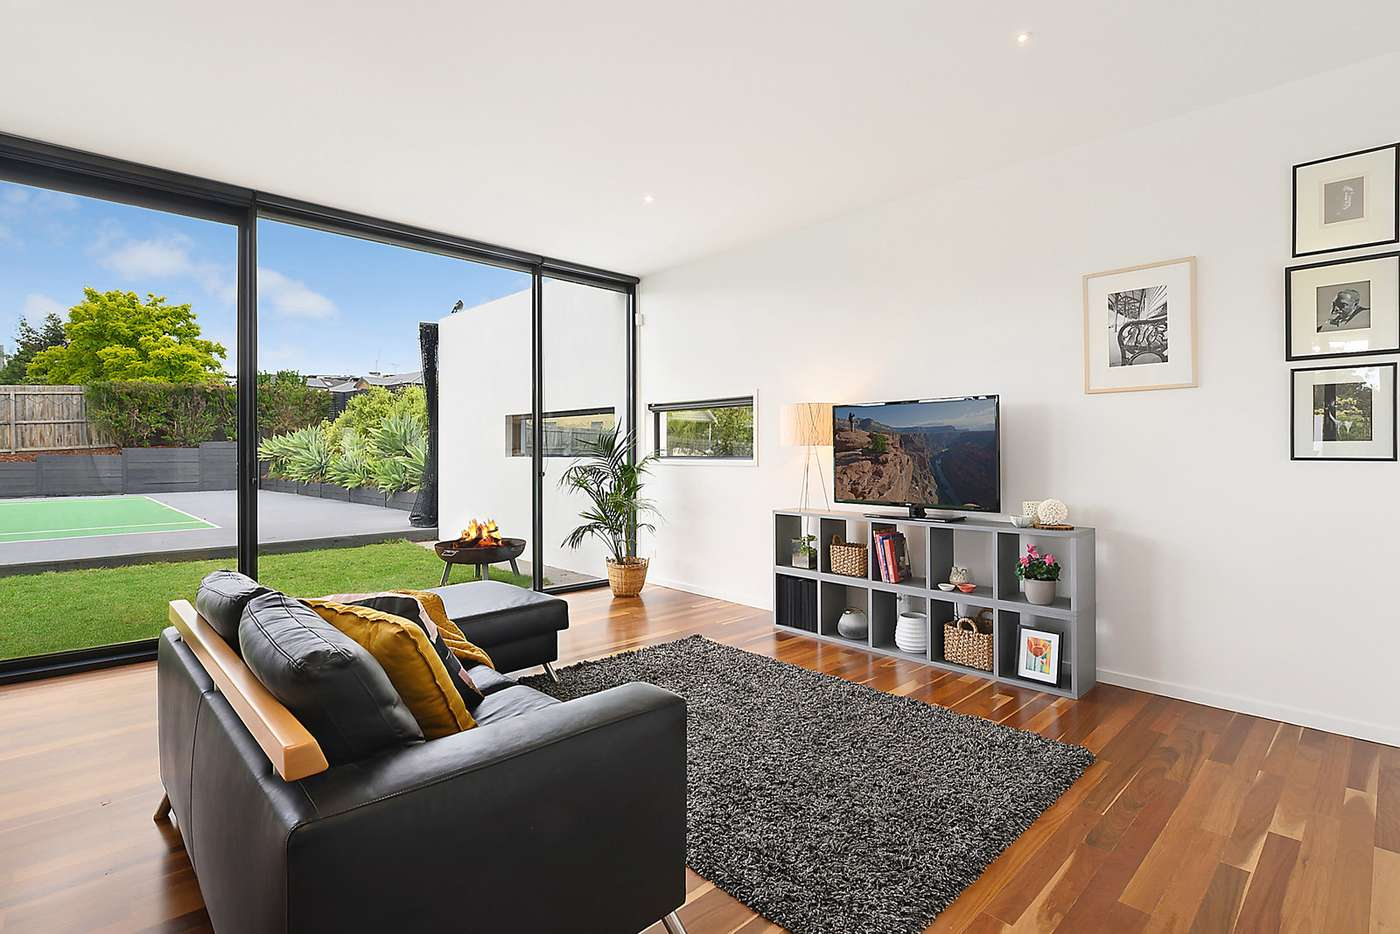 Sixth view of Homely house listing, 71-75 Rivergum Drive, Highton VIC 3216